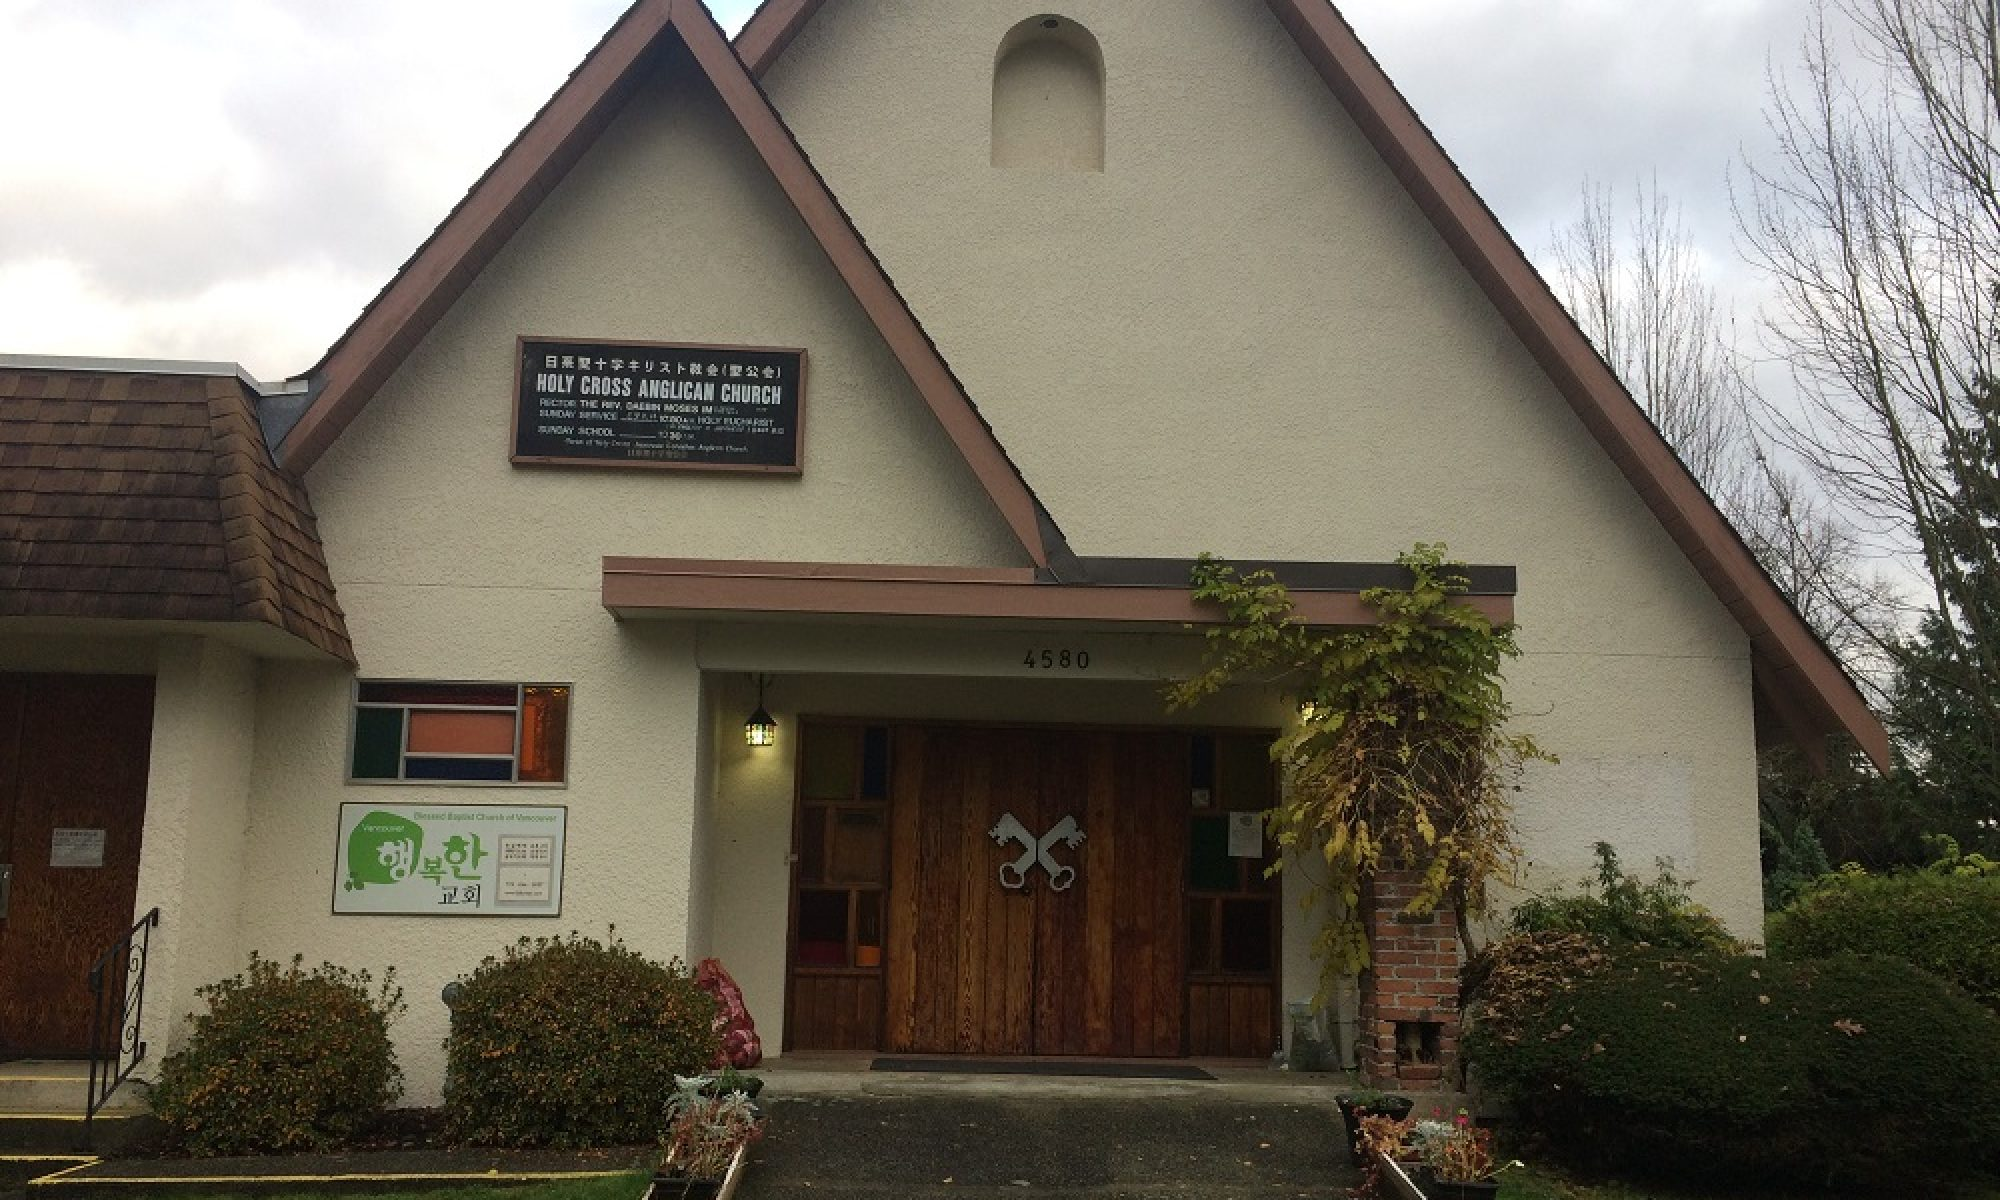 Holy Cross Japanese Canadian Anglican Church in Vancouver 聖公会 日系 聖十字教会